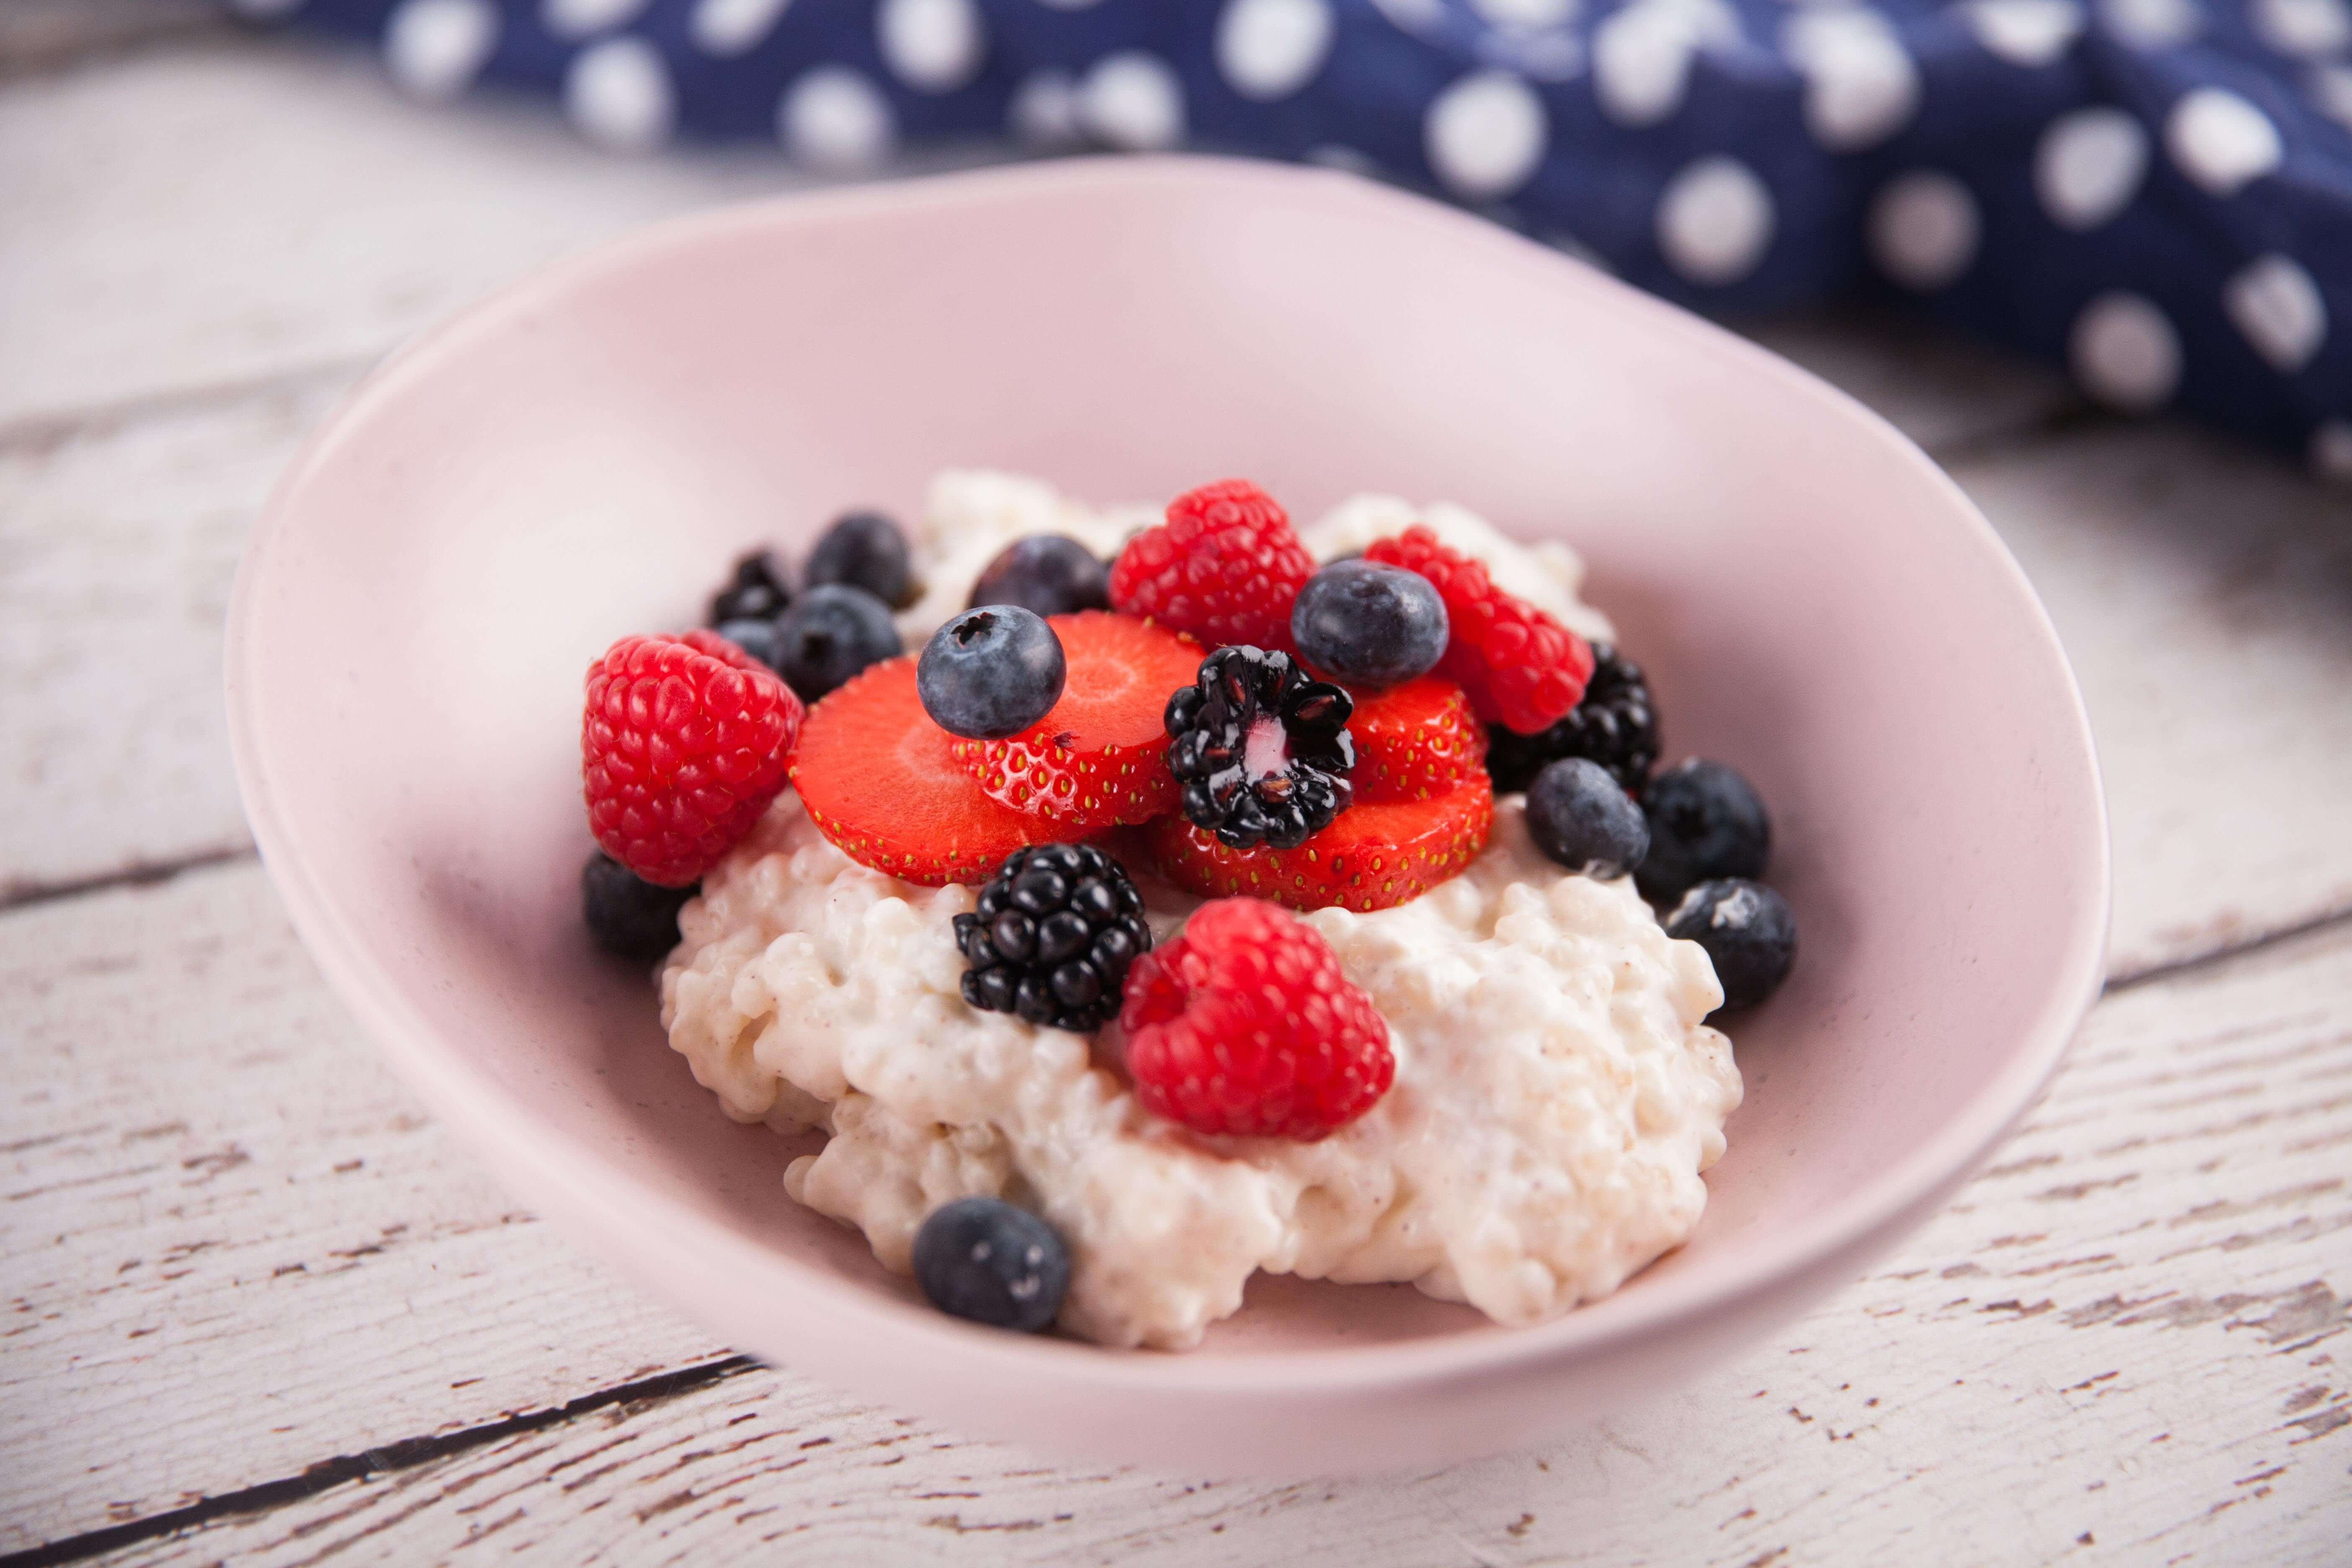 Sago Pudding with Fresh Berries